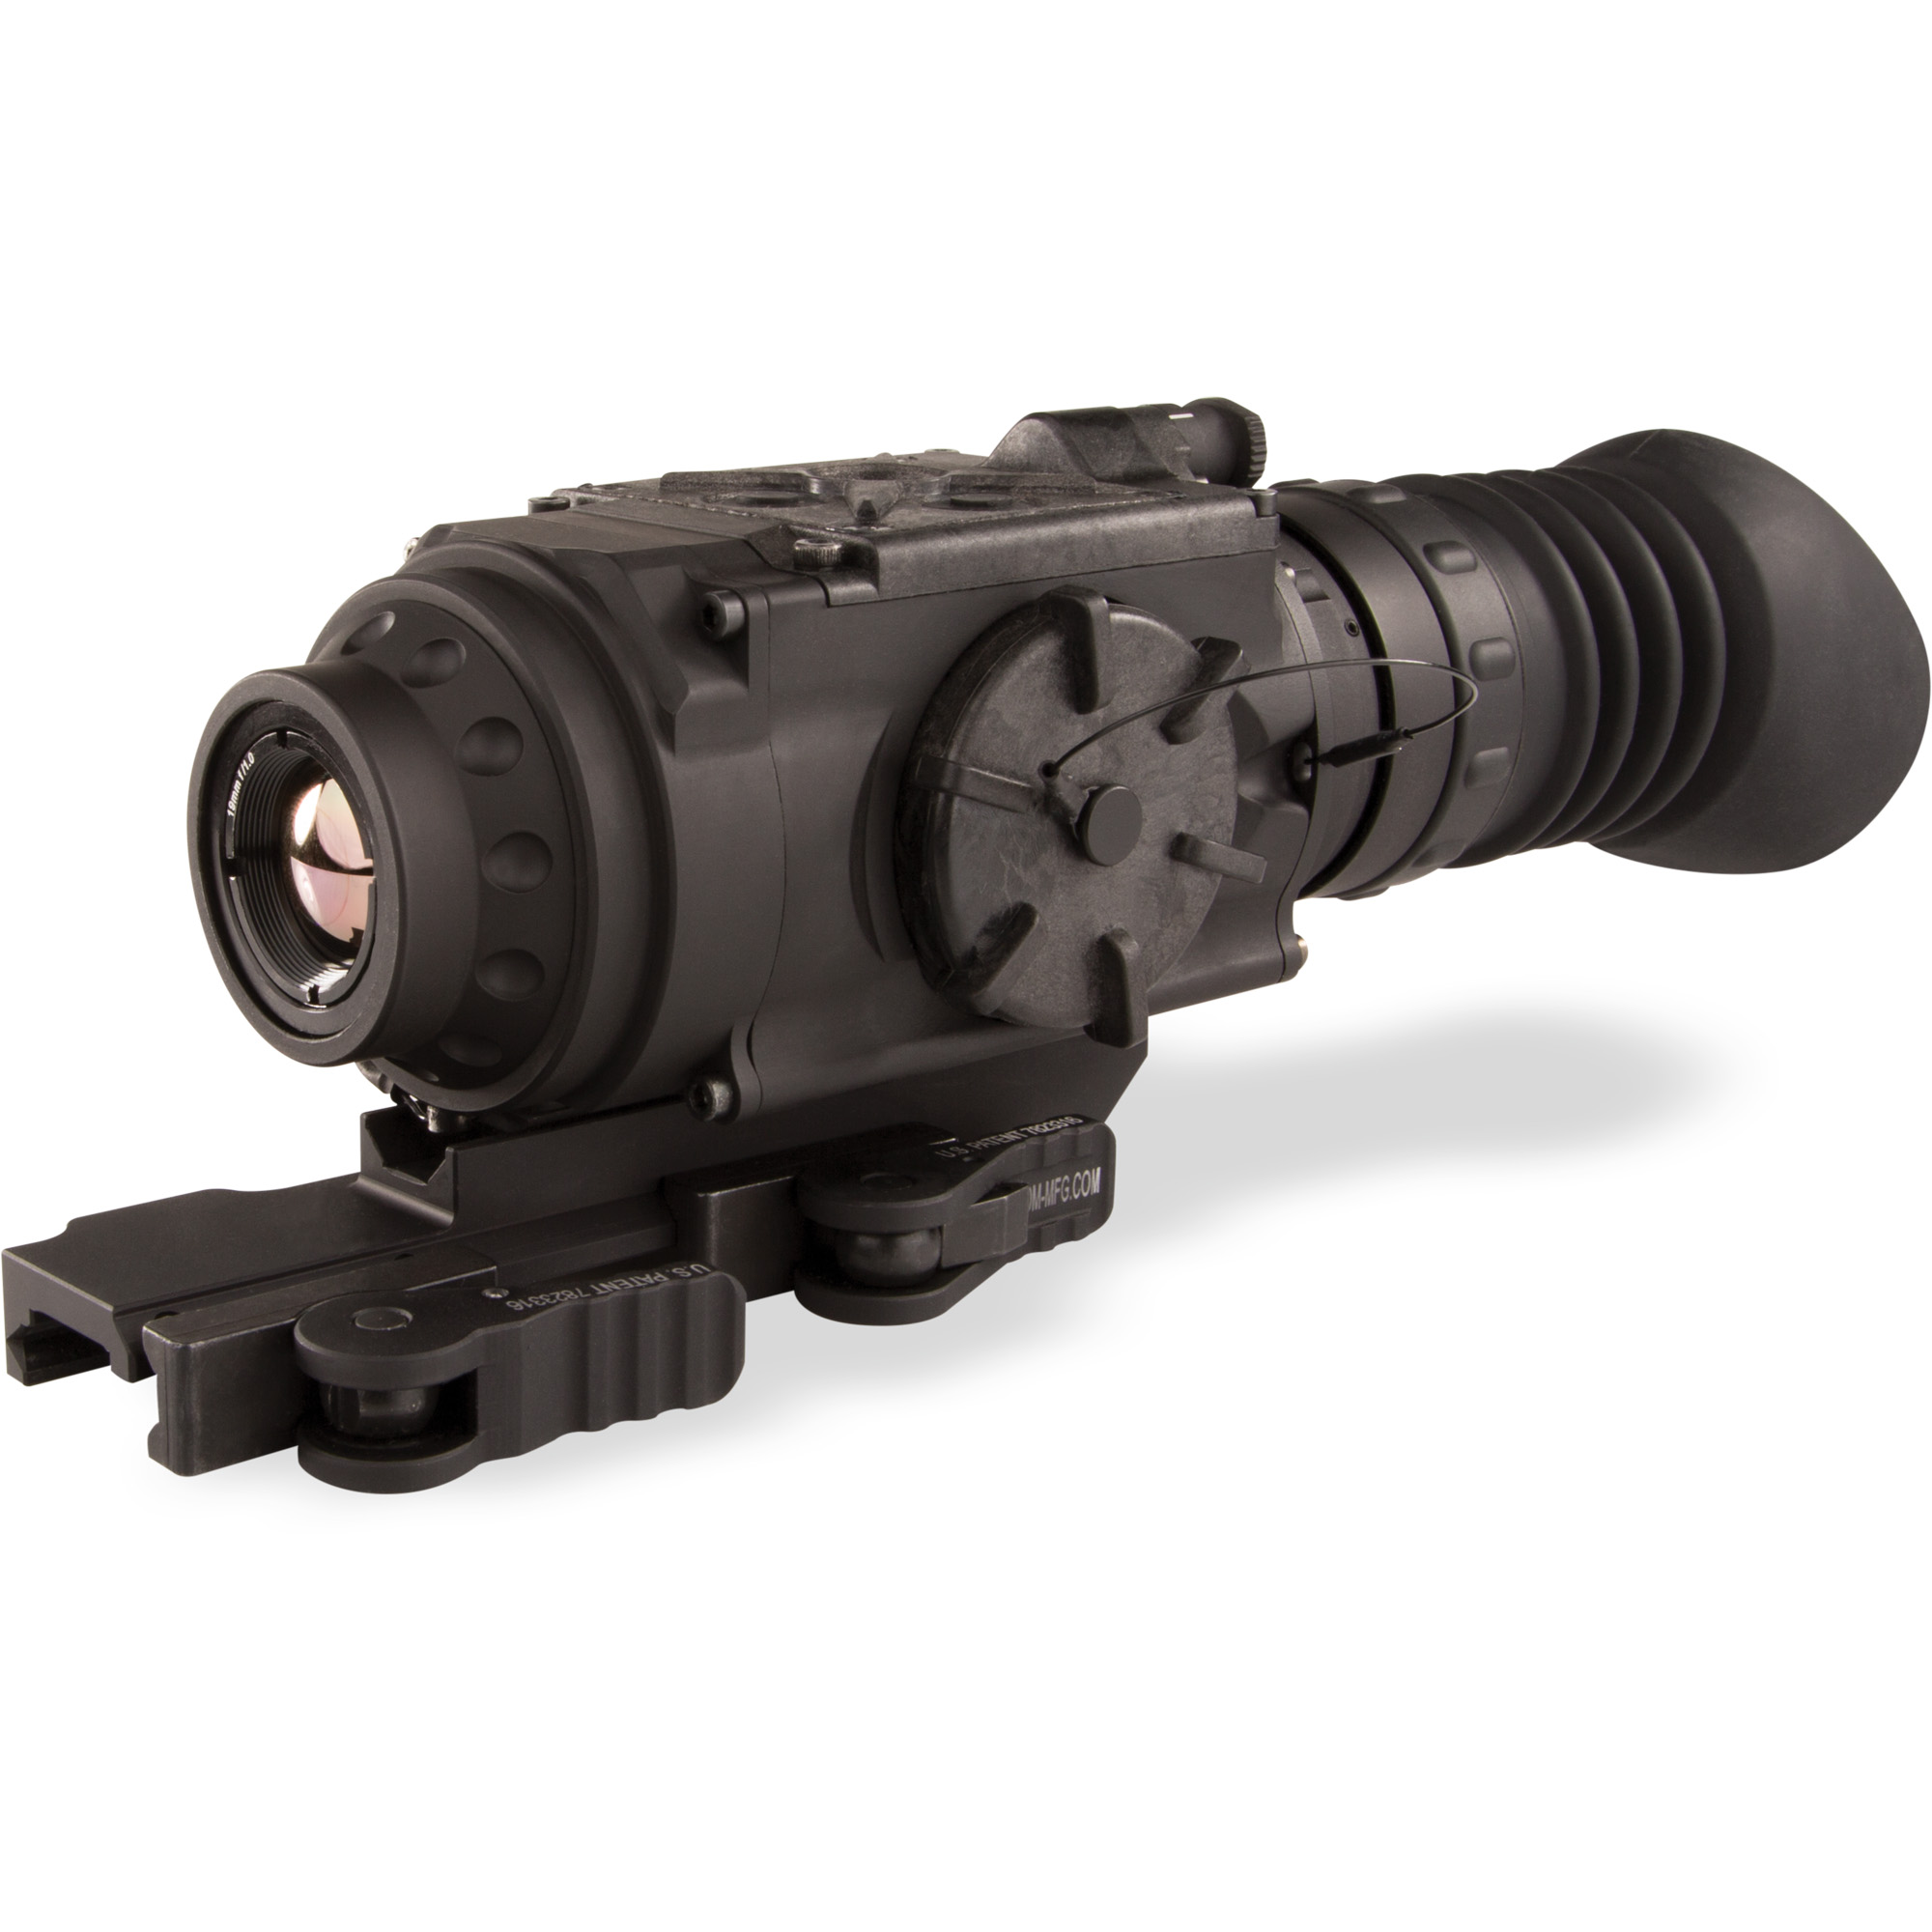 """Powered by the breakthrough FLIR Boson core"""" the ThermoSight Pro Series(R) PTS233 weapon sight sets the standard for thermal detection and classification. Featuring a 12 m pixel pitch sensor and 19mm lens"""" the PTS233 delivers brilliant"""" clean thermal imaging with a 12 degree x 9.5 degree field of view for greater precision. The entire ThermoSight Pro Series offers an uncompressed video signal"""" a high definition display"""" and shot-activated video recording."""